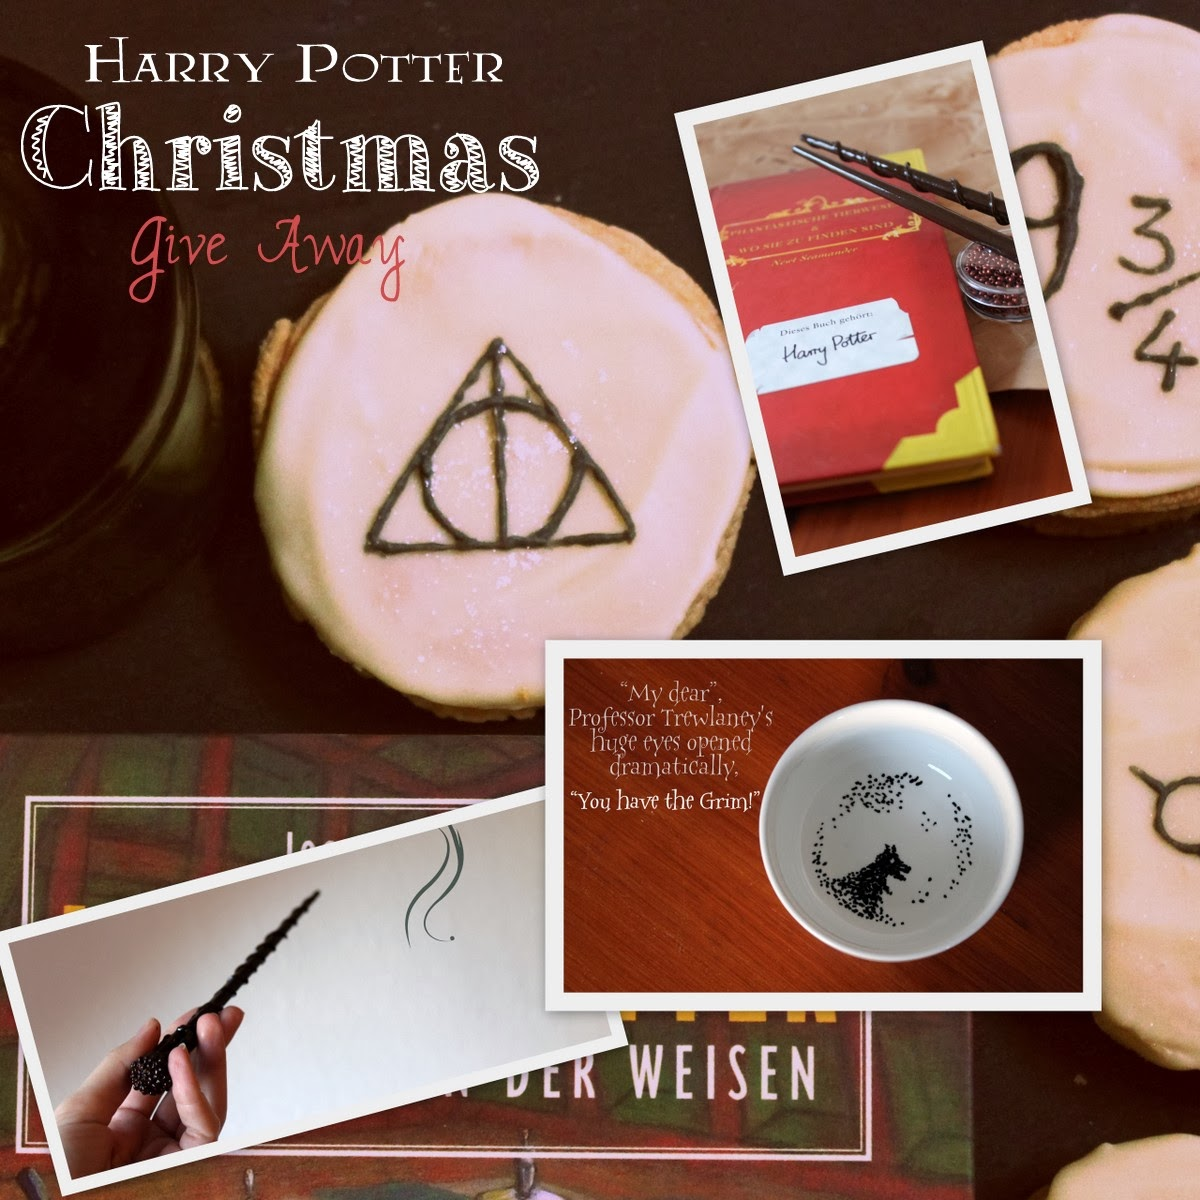 Harry Potter Christmas Give Away